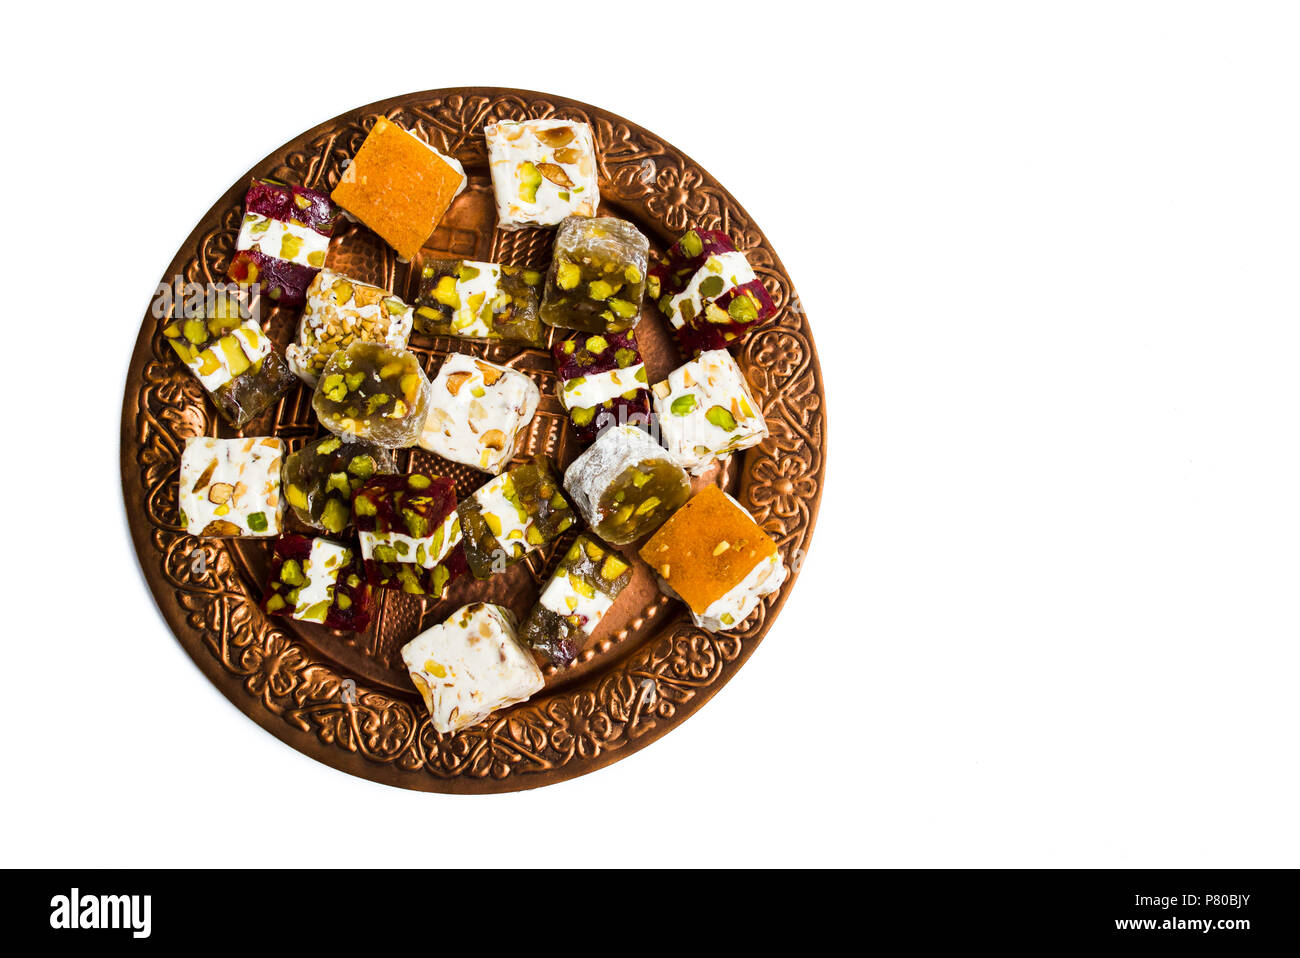 Various Turkish delights on a copper plate isolated on white - Stock Image